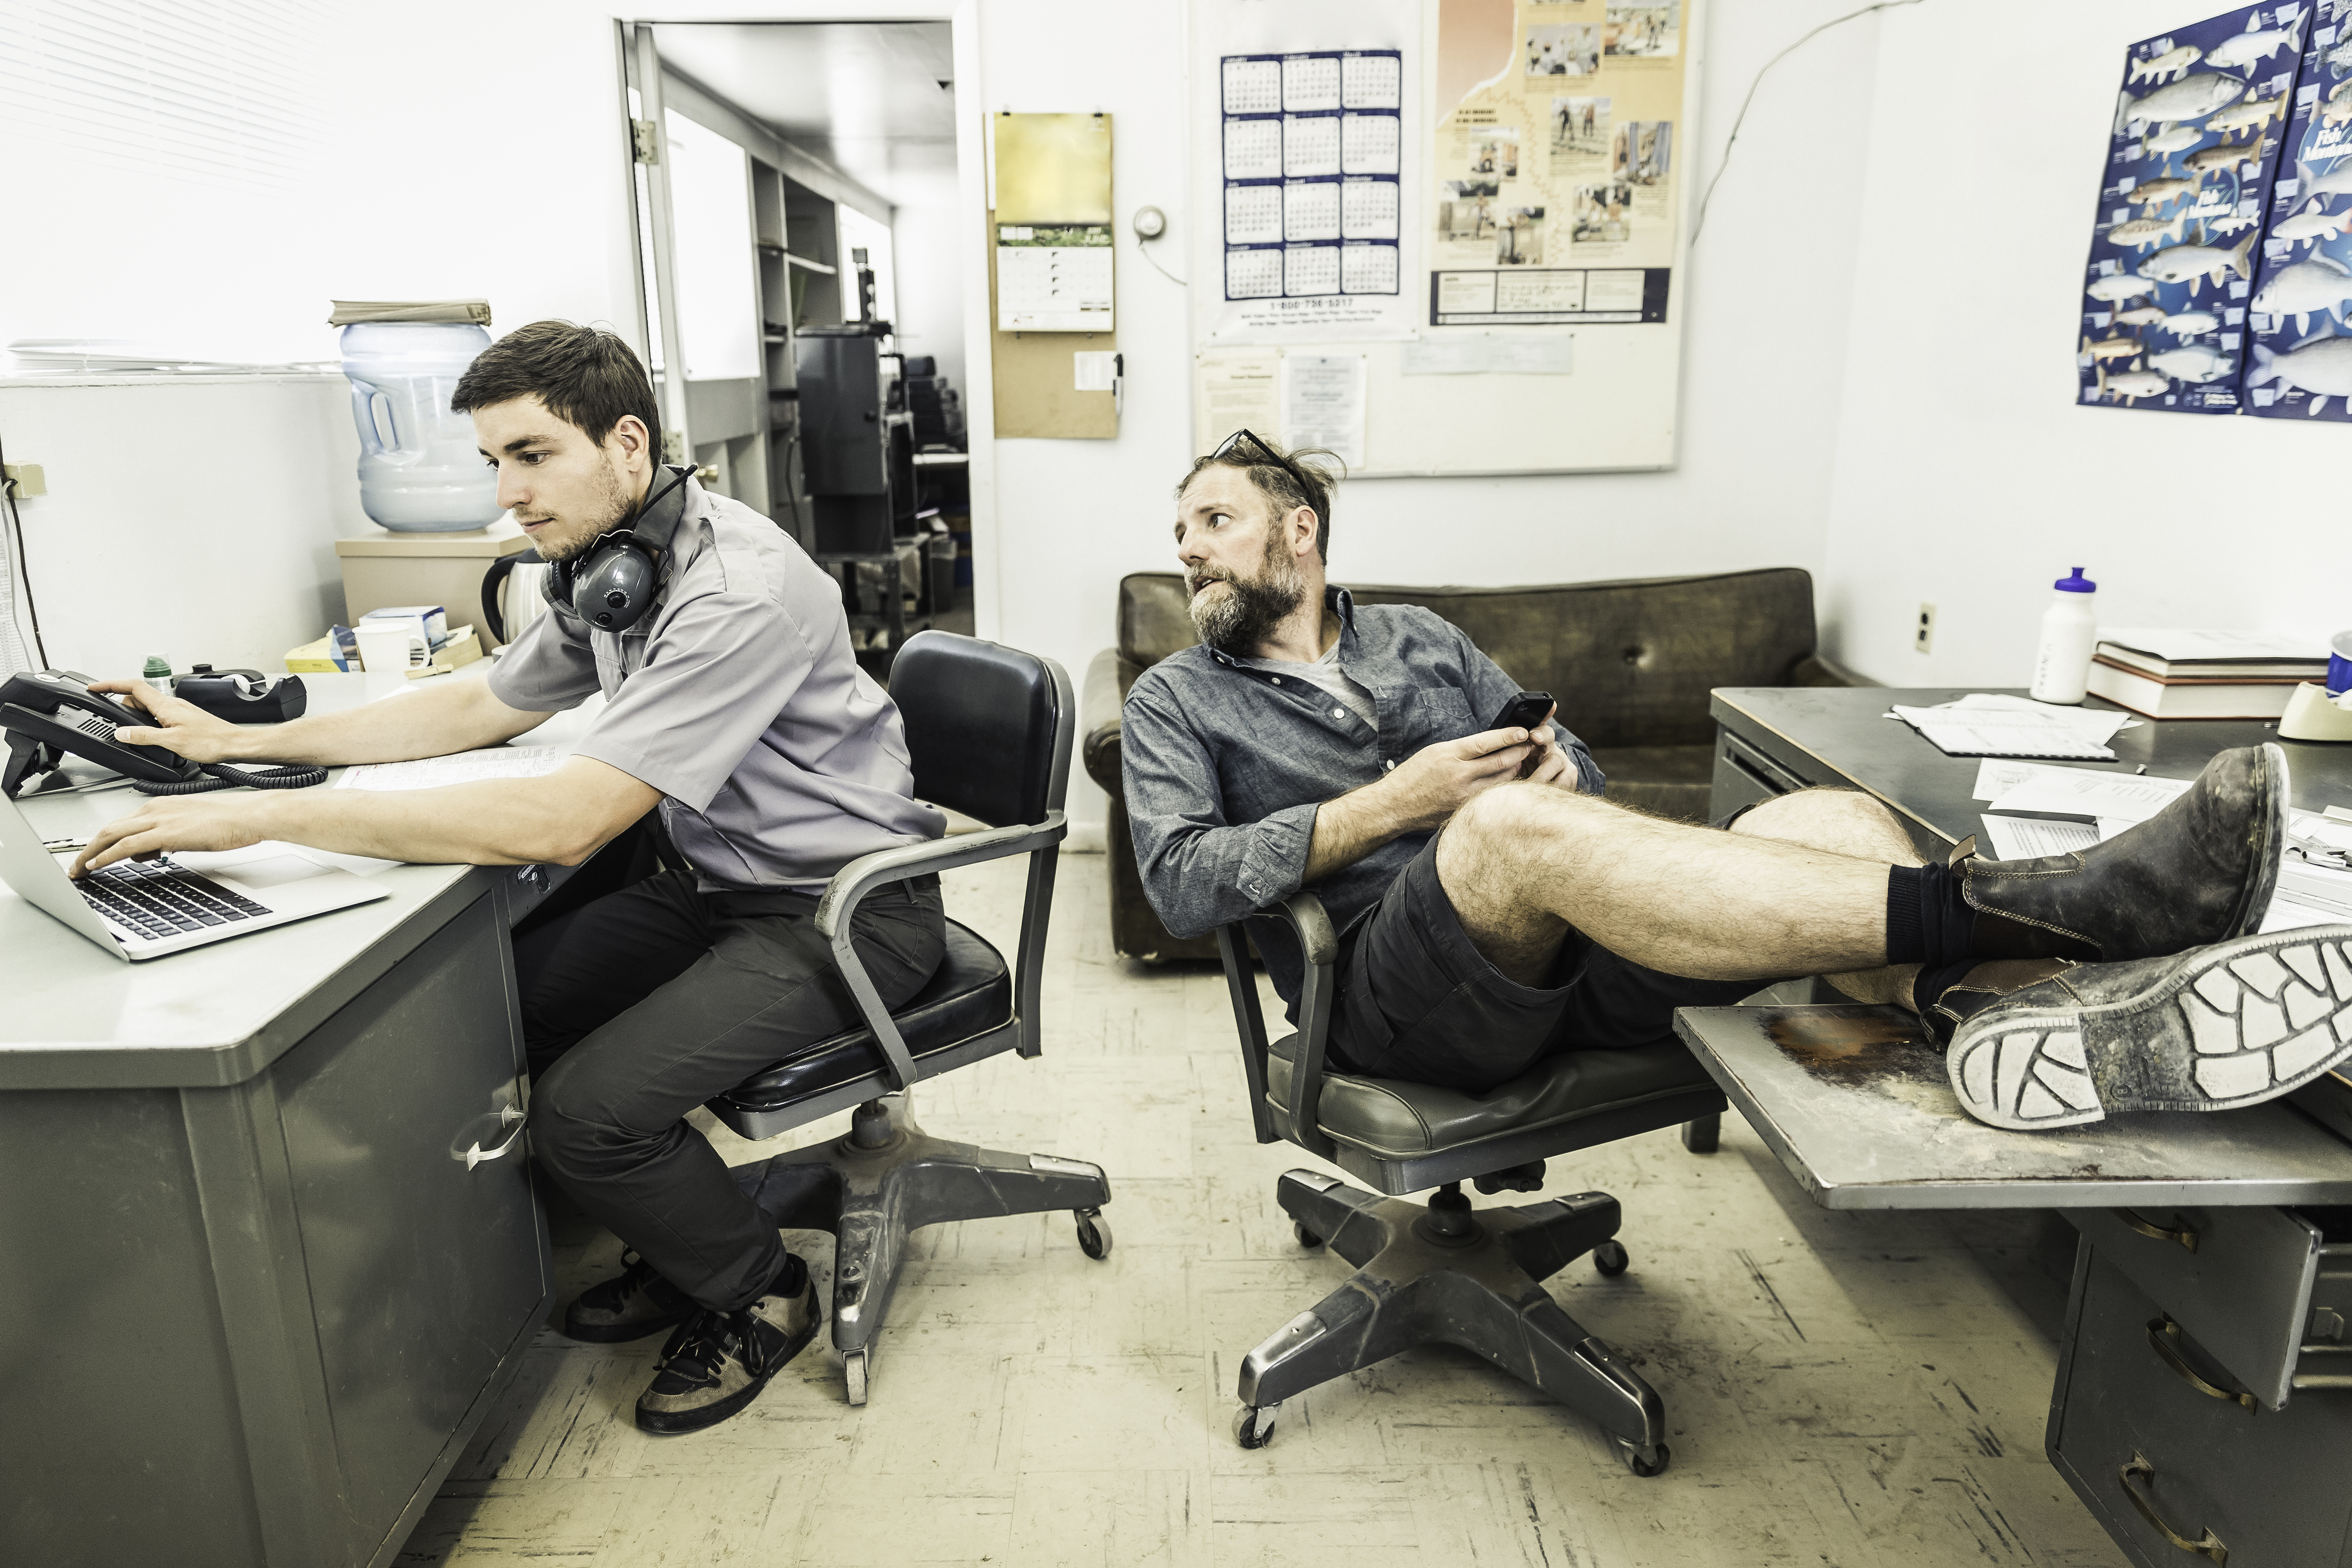 OSHA Guidelines on Wearing Shorts to Work | Chron com